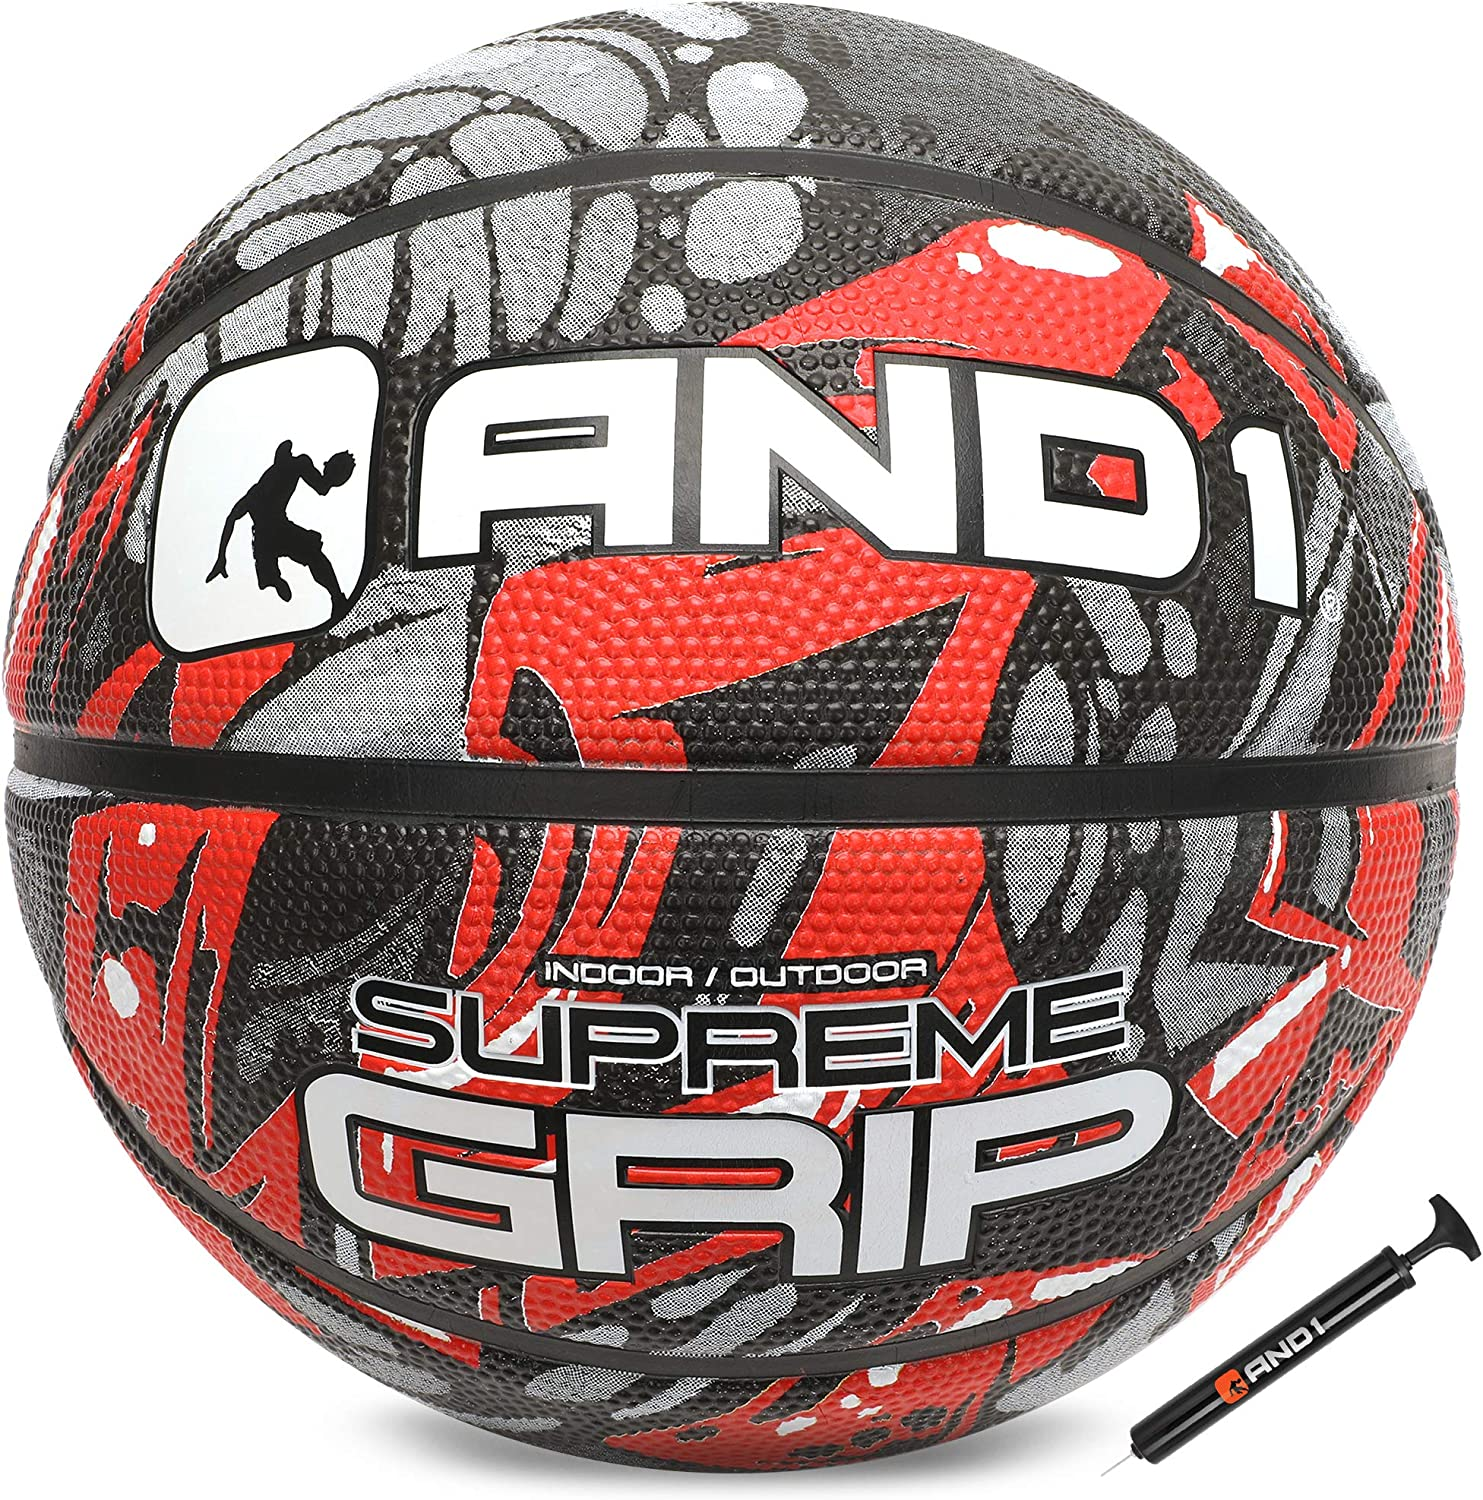 AND1 Supreme Grip Rubber Basketball for indoor and outdoor games